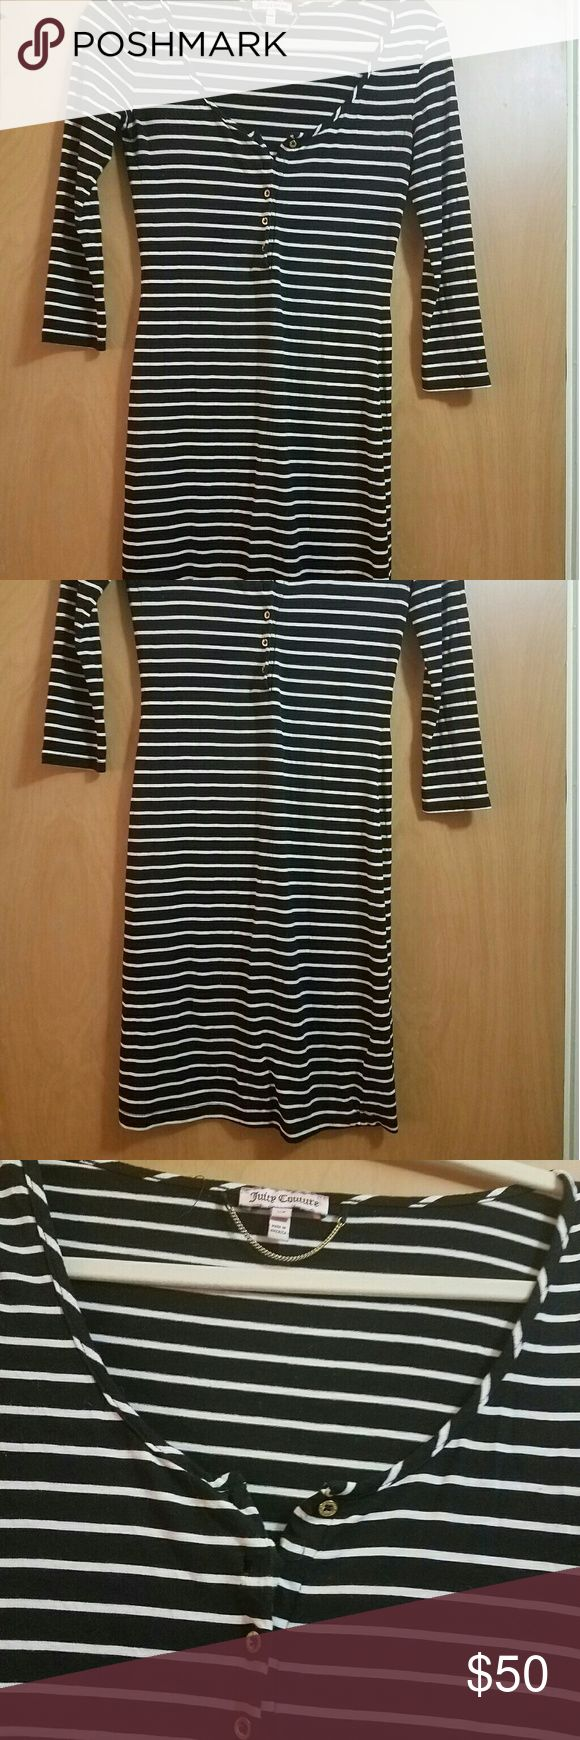 XS black and white striped Juicy Couture dress Gold hardware black and white striped Juicy Couture dress, size XS Juicy Couture Dresses Long Sleeve